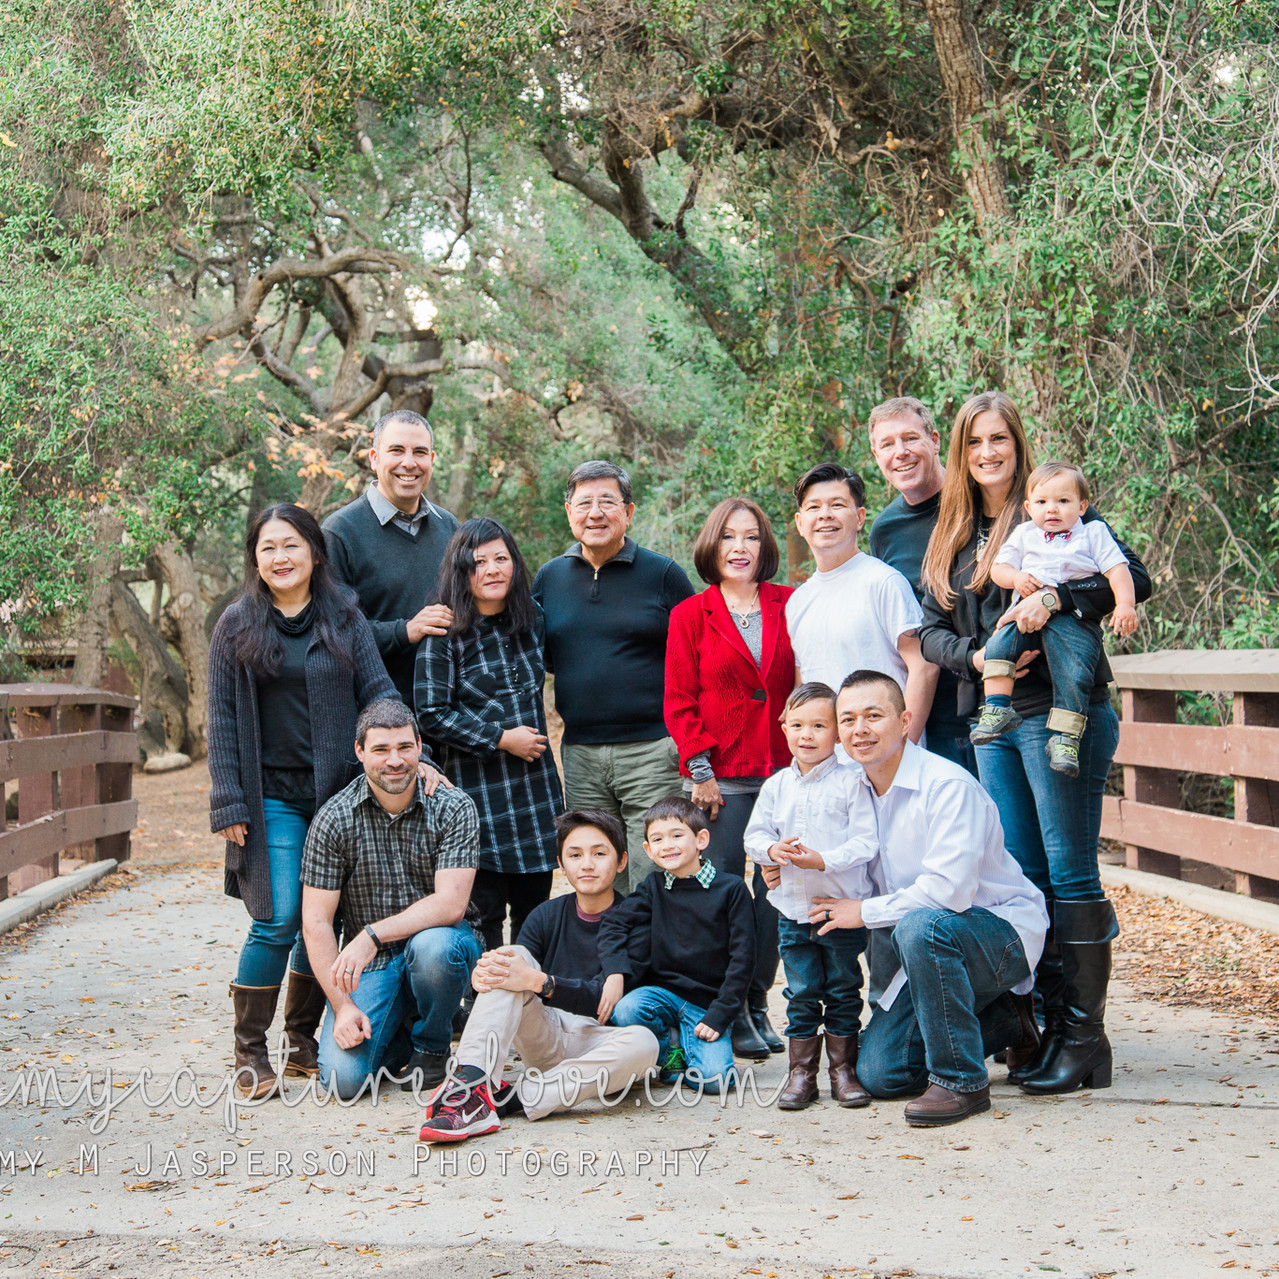 Large family group portraits taken at Oak Canyon Nature Center, Anaheim California. Trees, park, outdoor, large family, group, photography, Orange County Family Photographer.